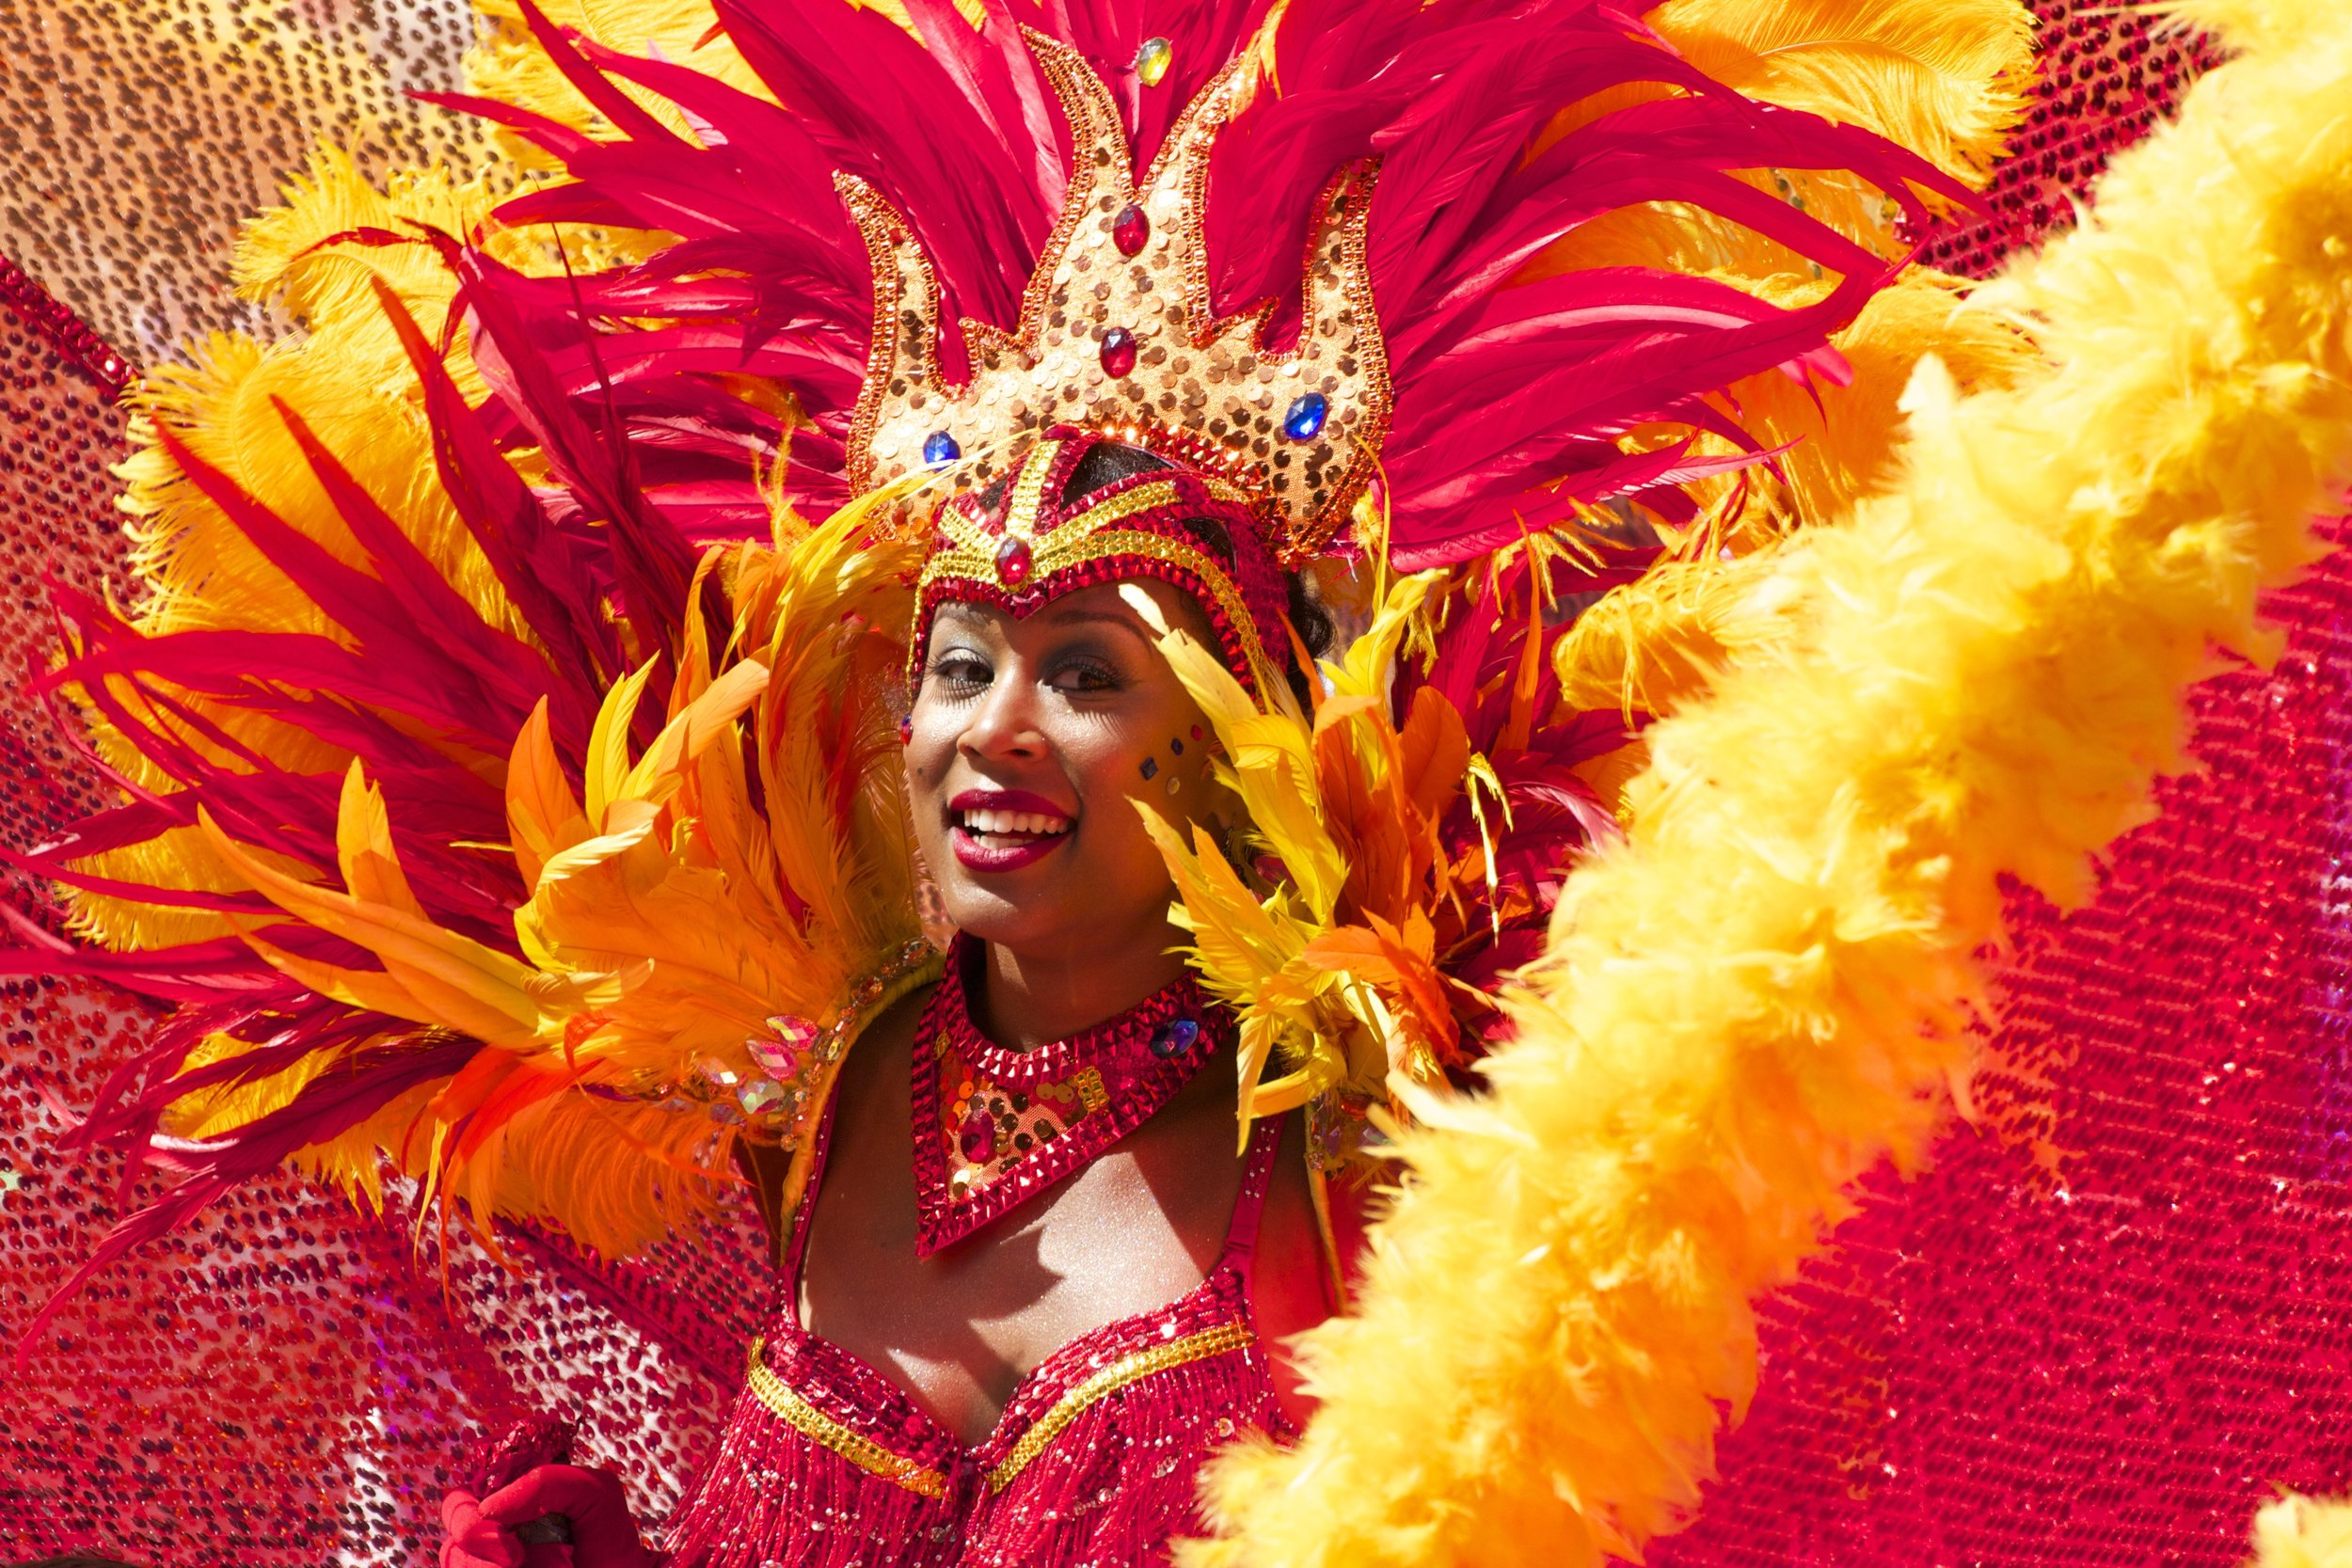 carnival-woman-costume-orange-48796.jpg